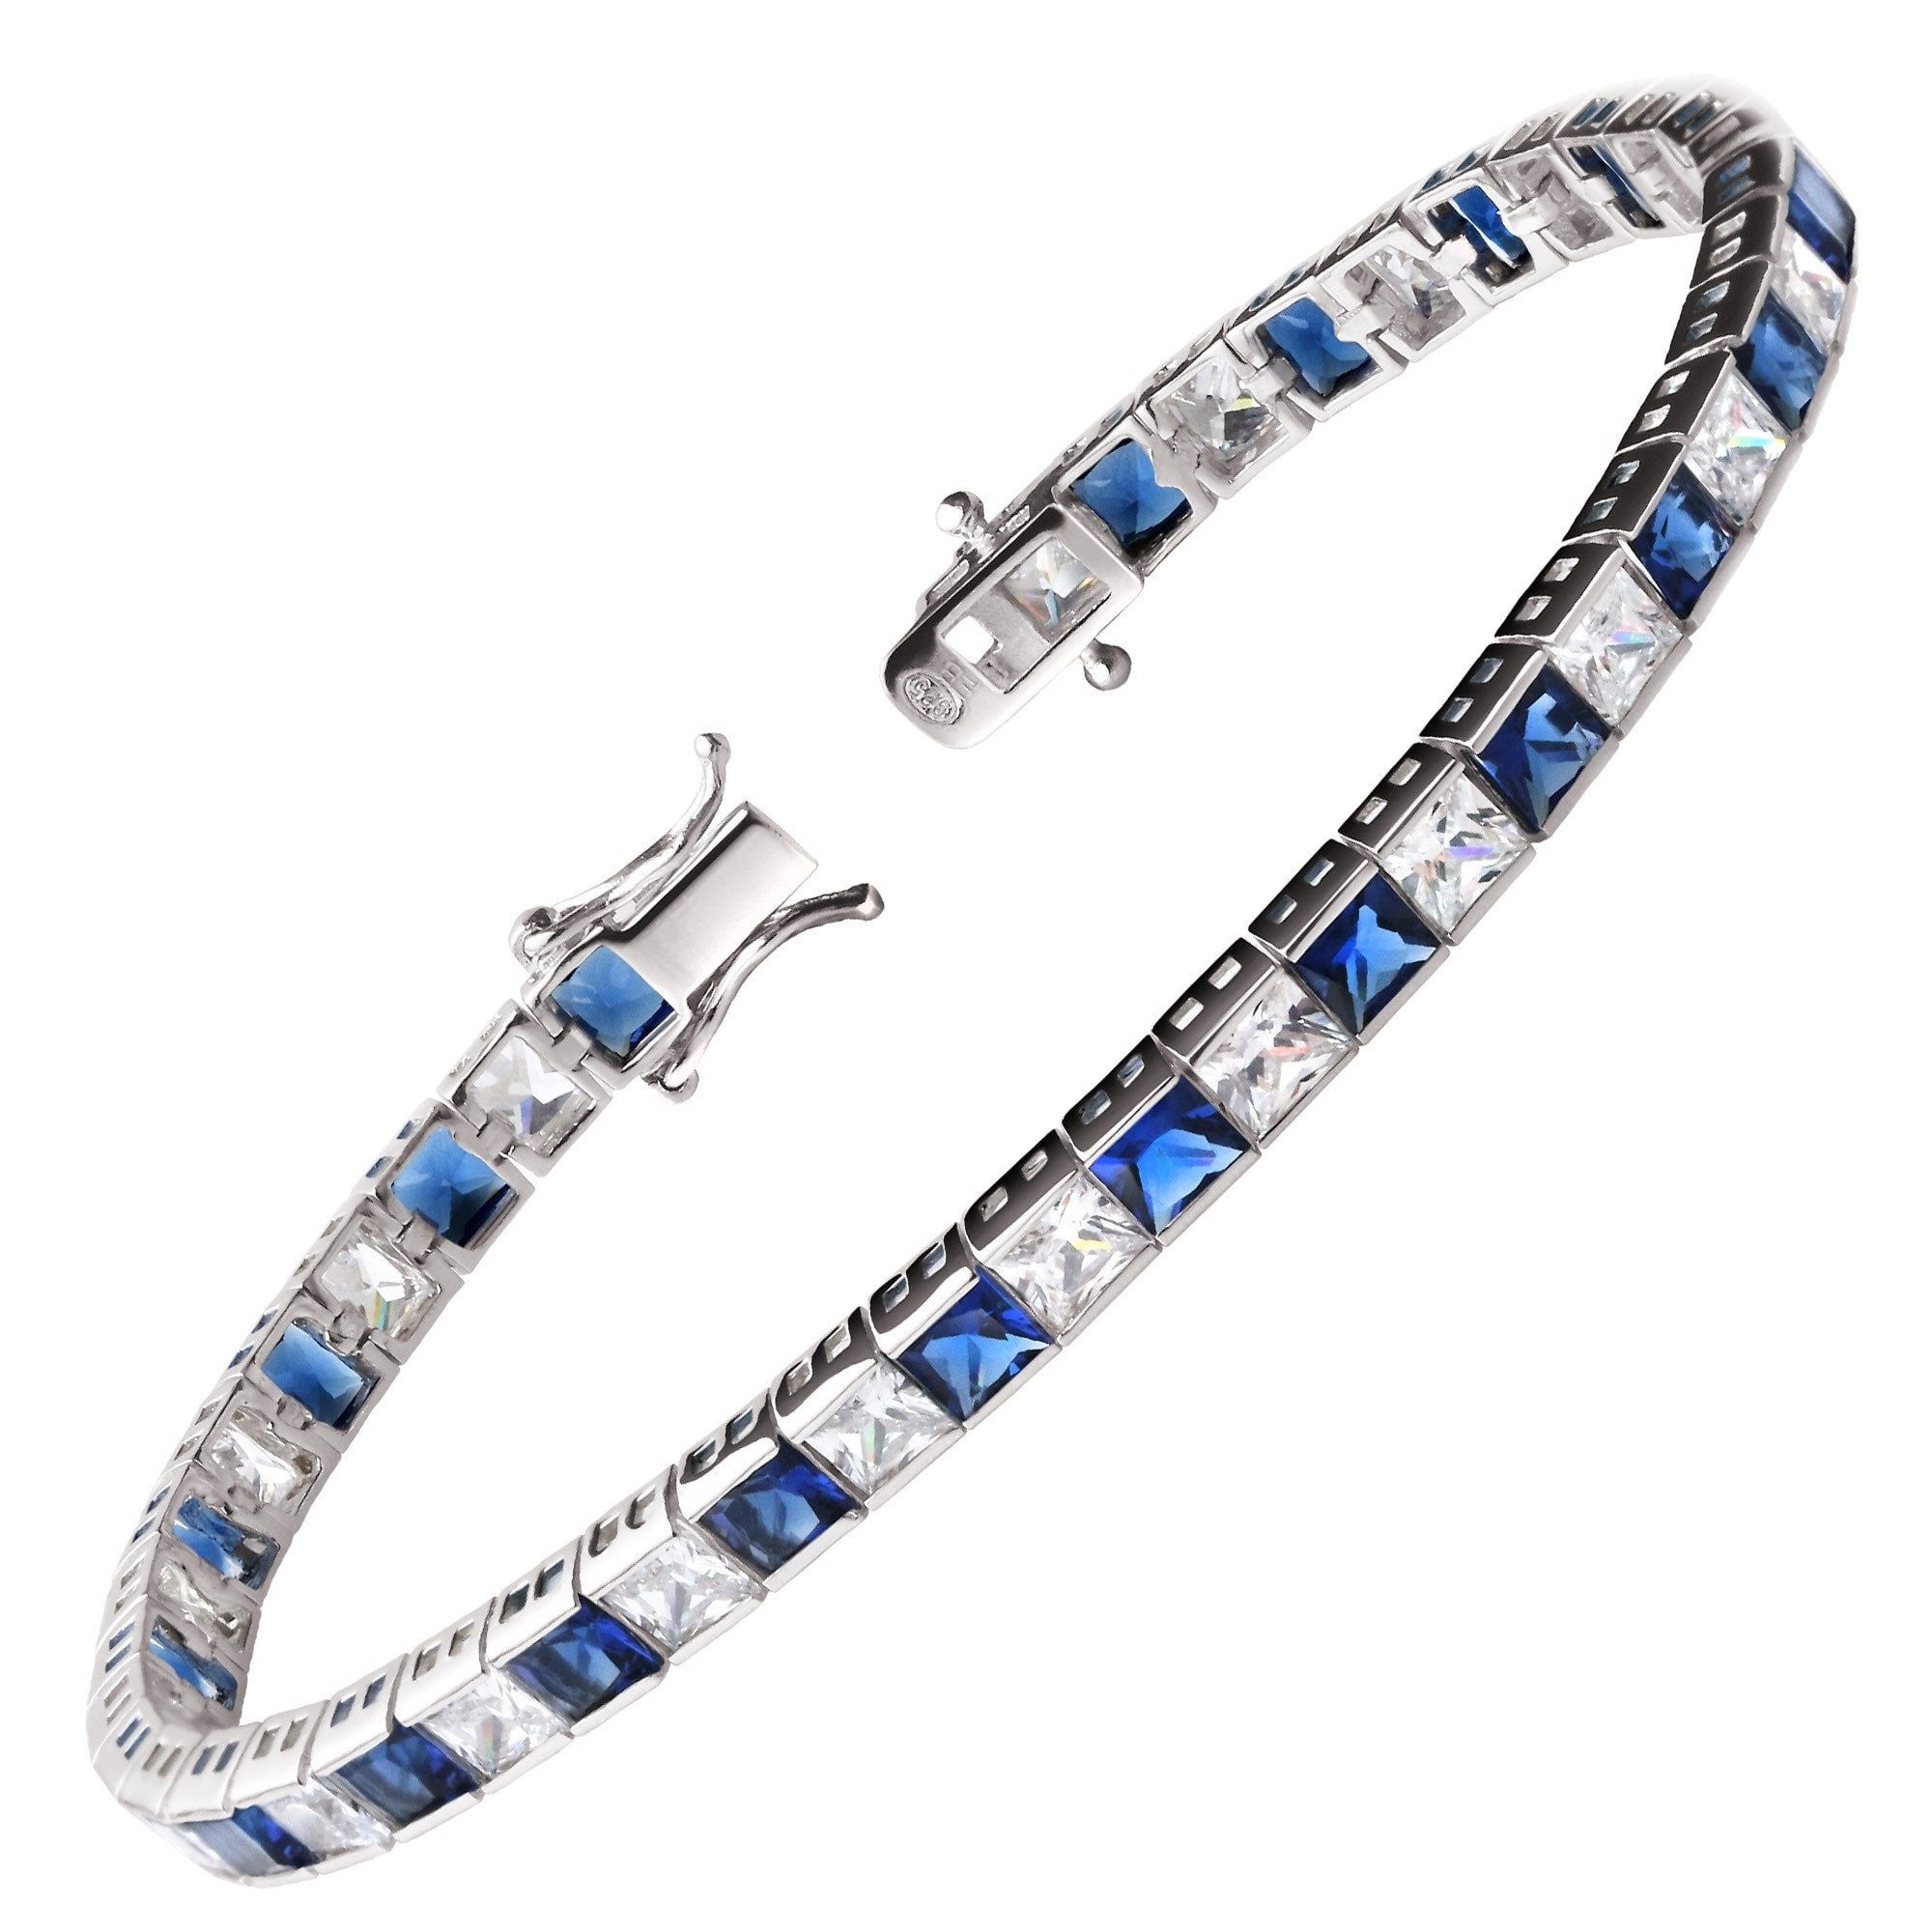 bracelet clarity dp diamond com cttw i jewelry blue created j infinity color sapphire gemstone amazon silver sterling and